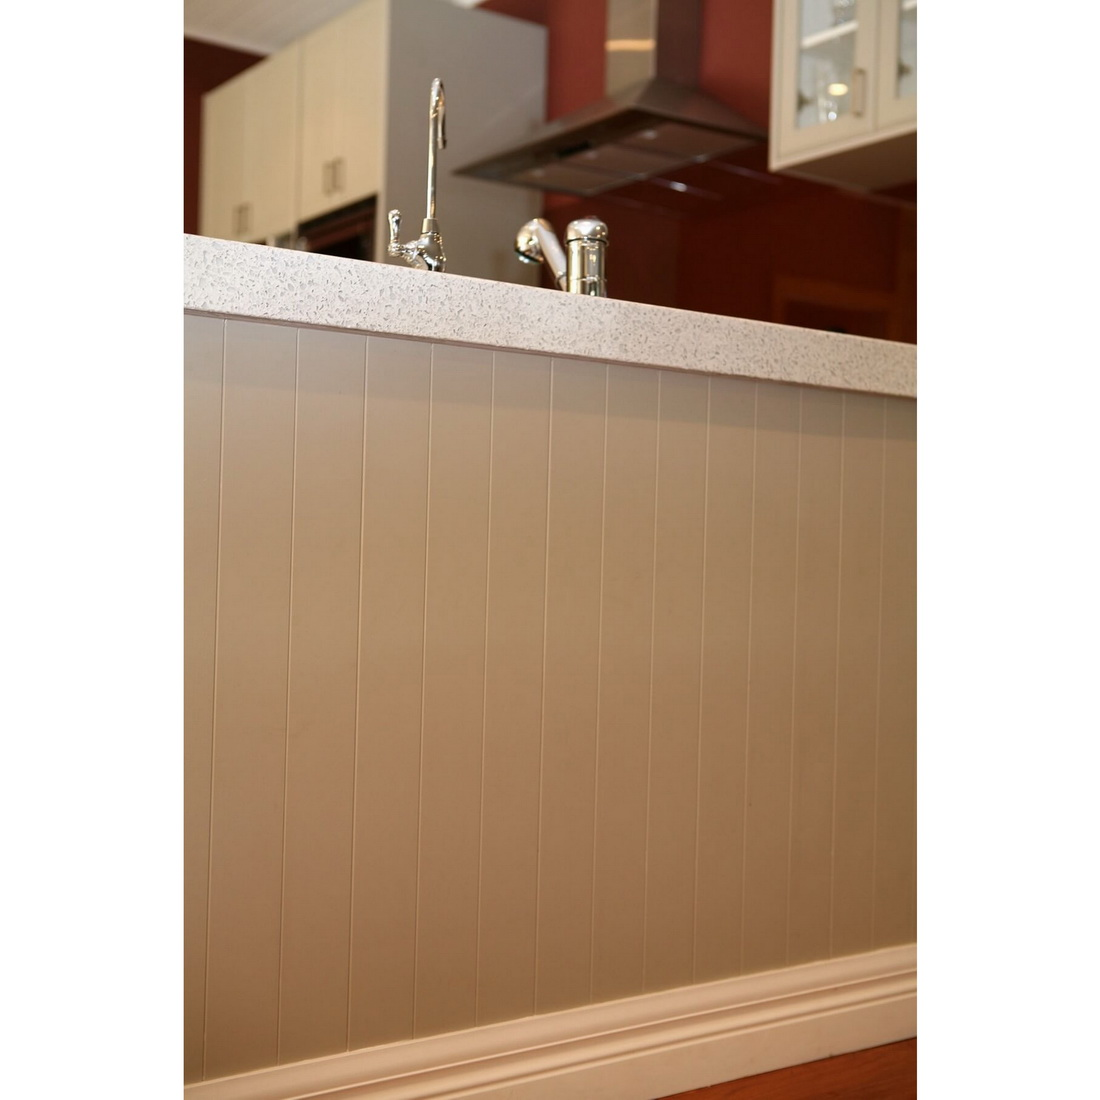 IBS Paneline V-Groove MDF Panel 2745 x 1200 x 9 mm Surface Paint